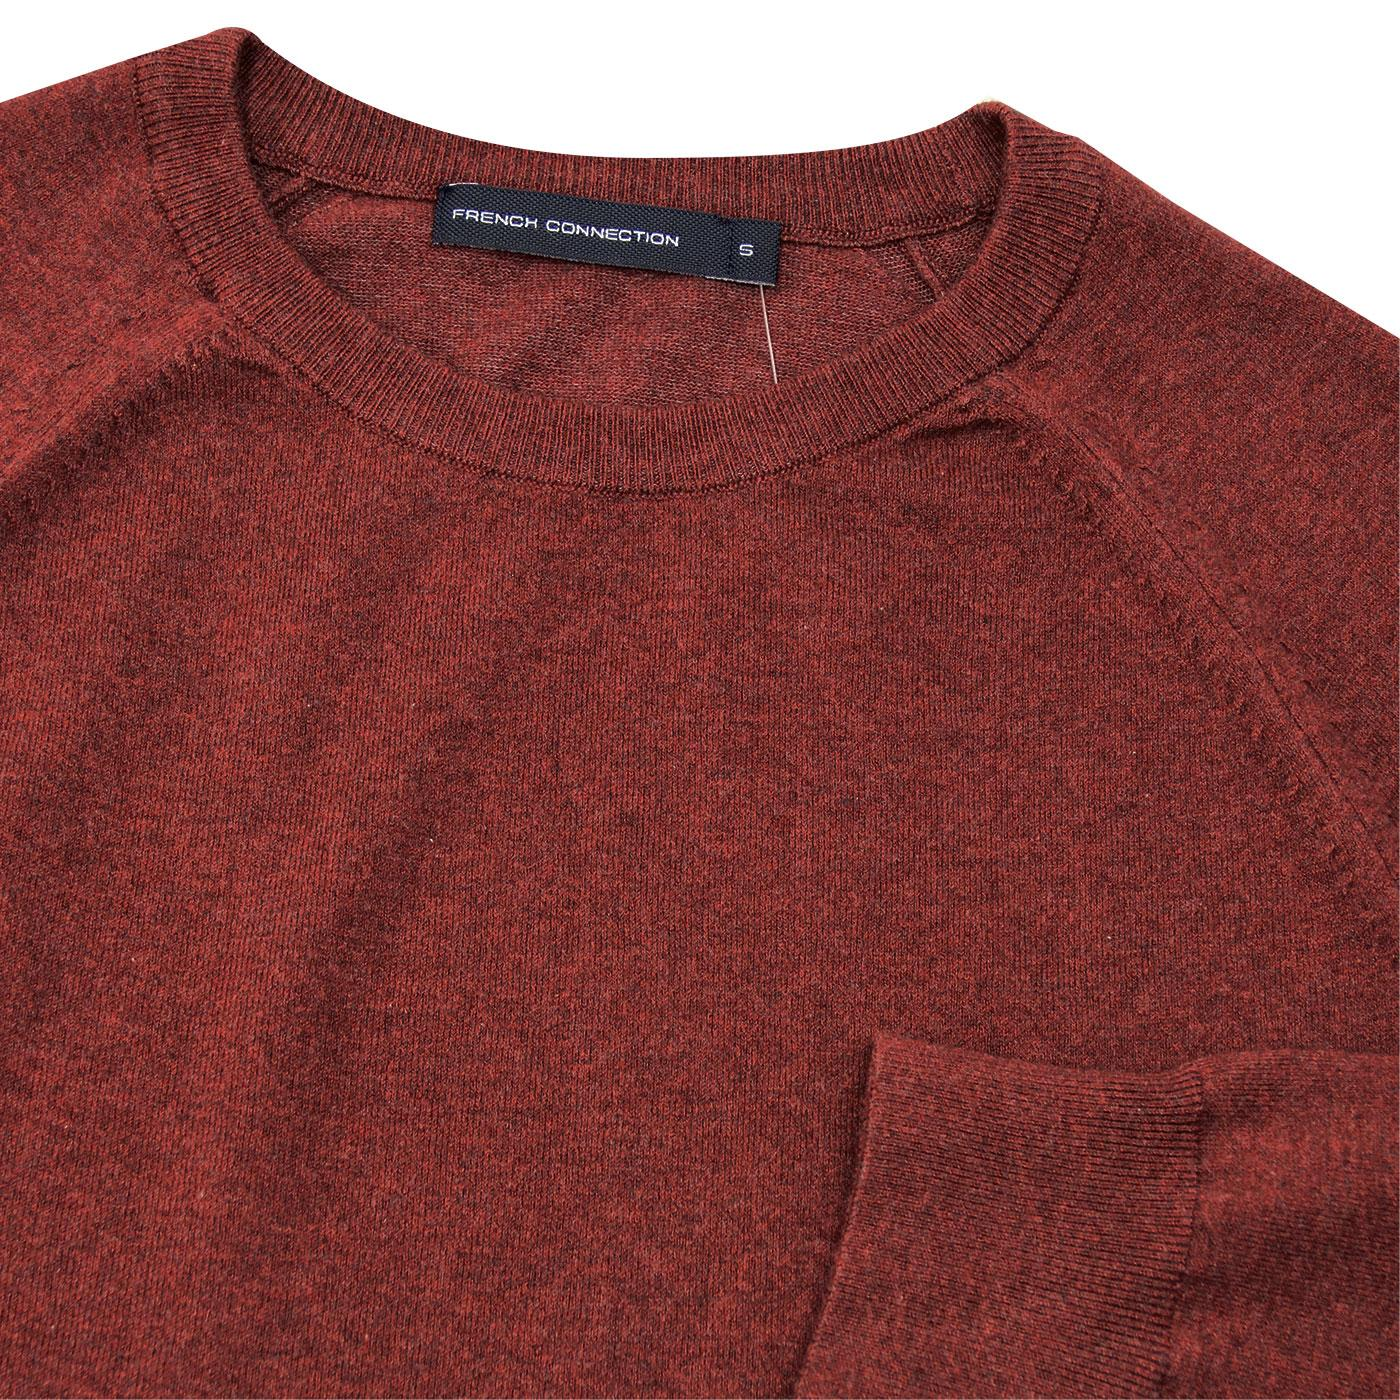 a1e8af430aef2 FRENCH CONNECTION Stretch Crew Neck Jumper Raspberry